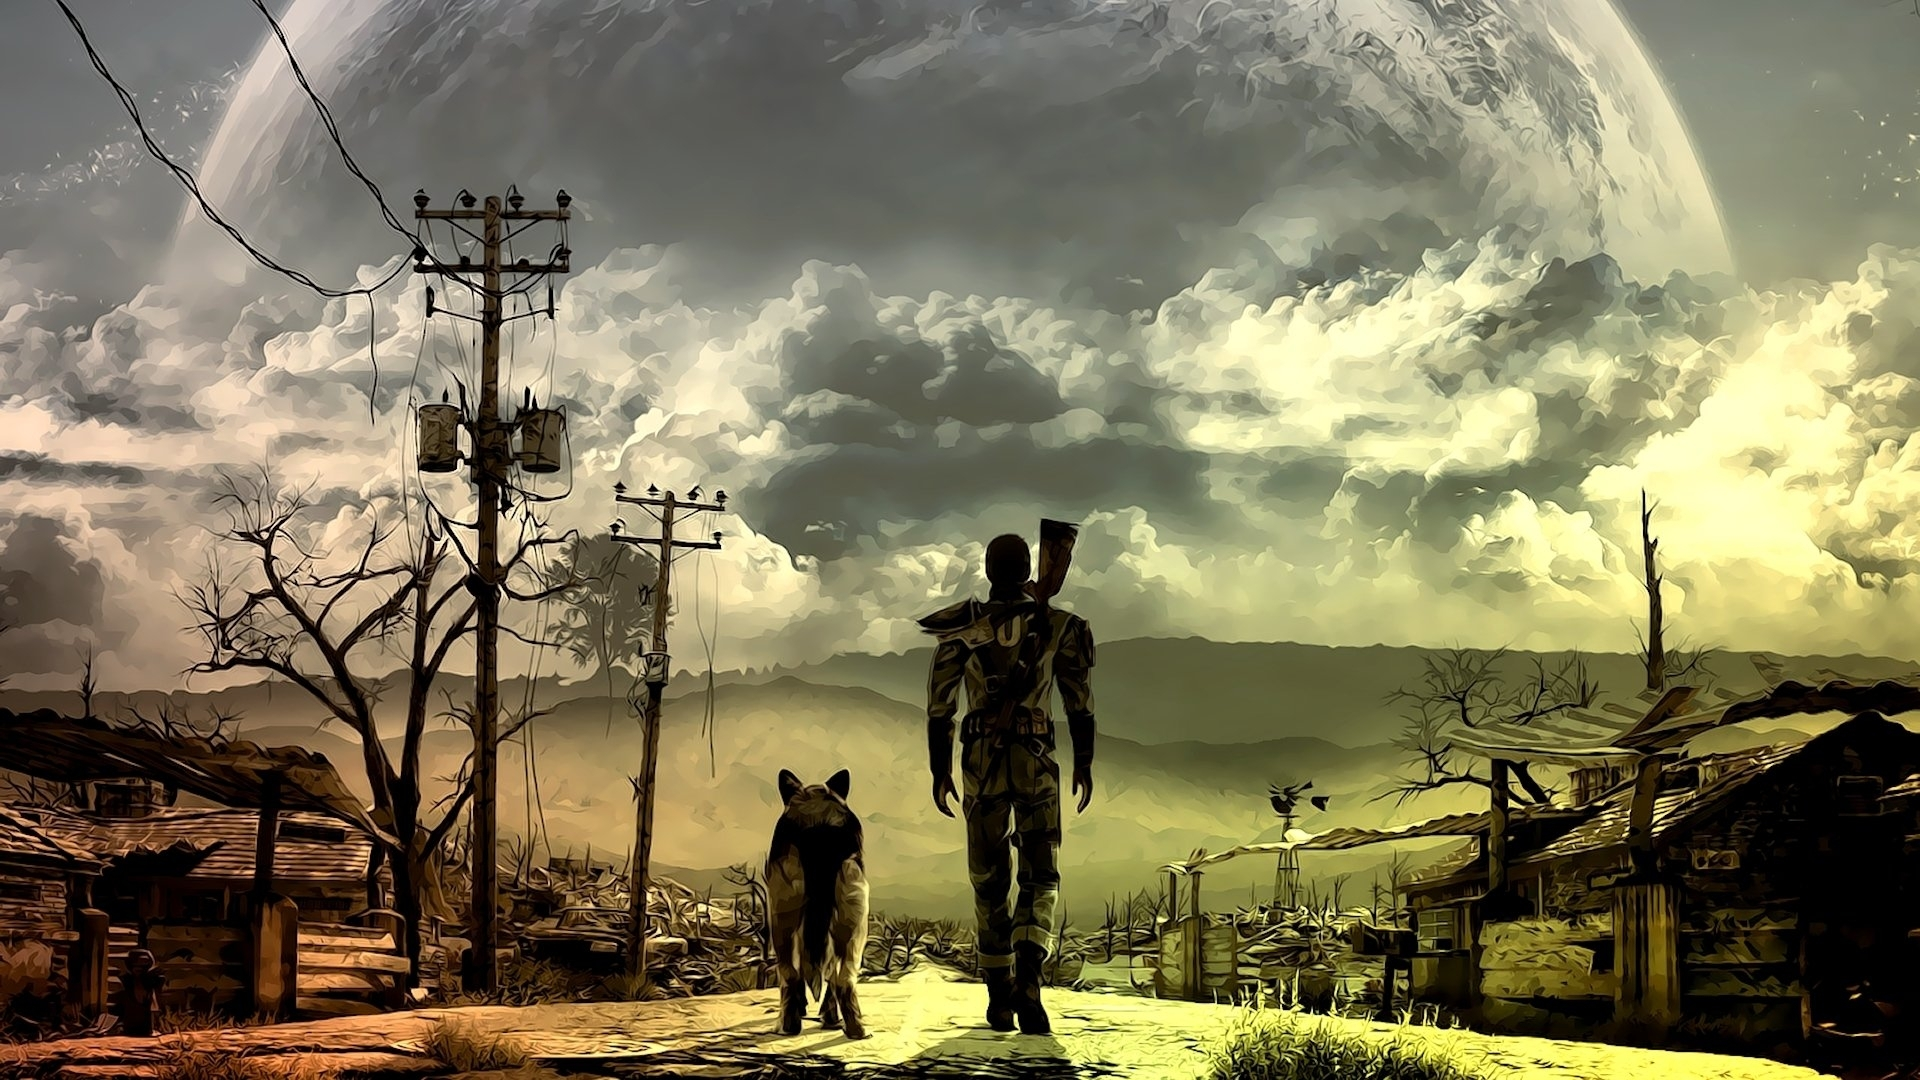 36 fallout 3 hd wallpapers | background images - wallpaper abyss